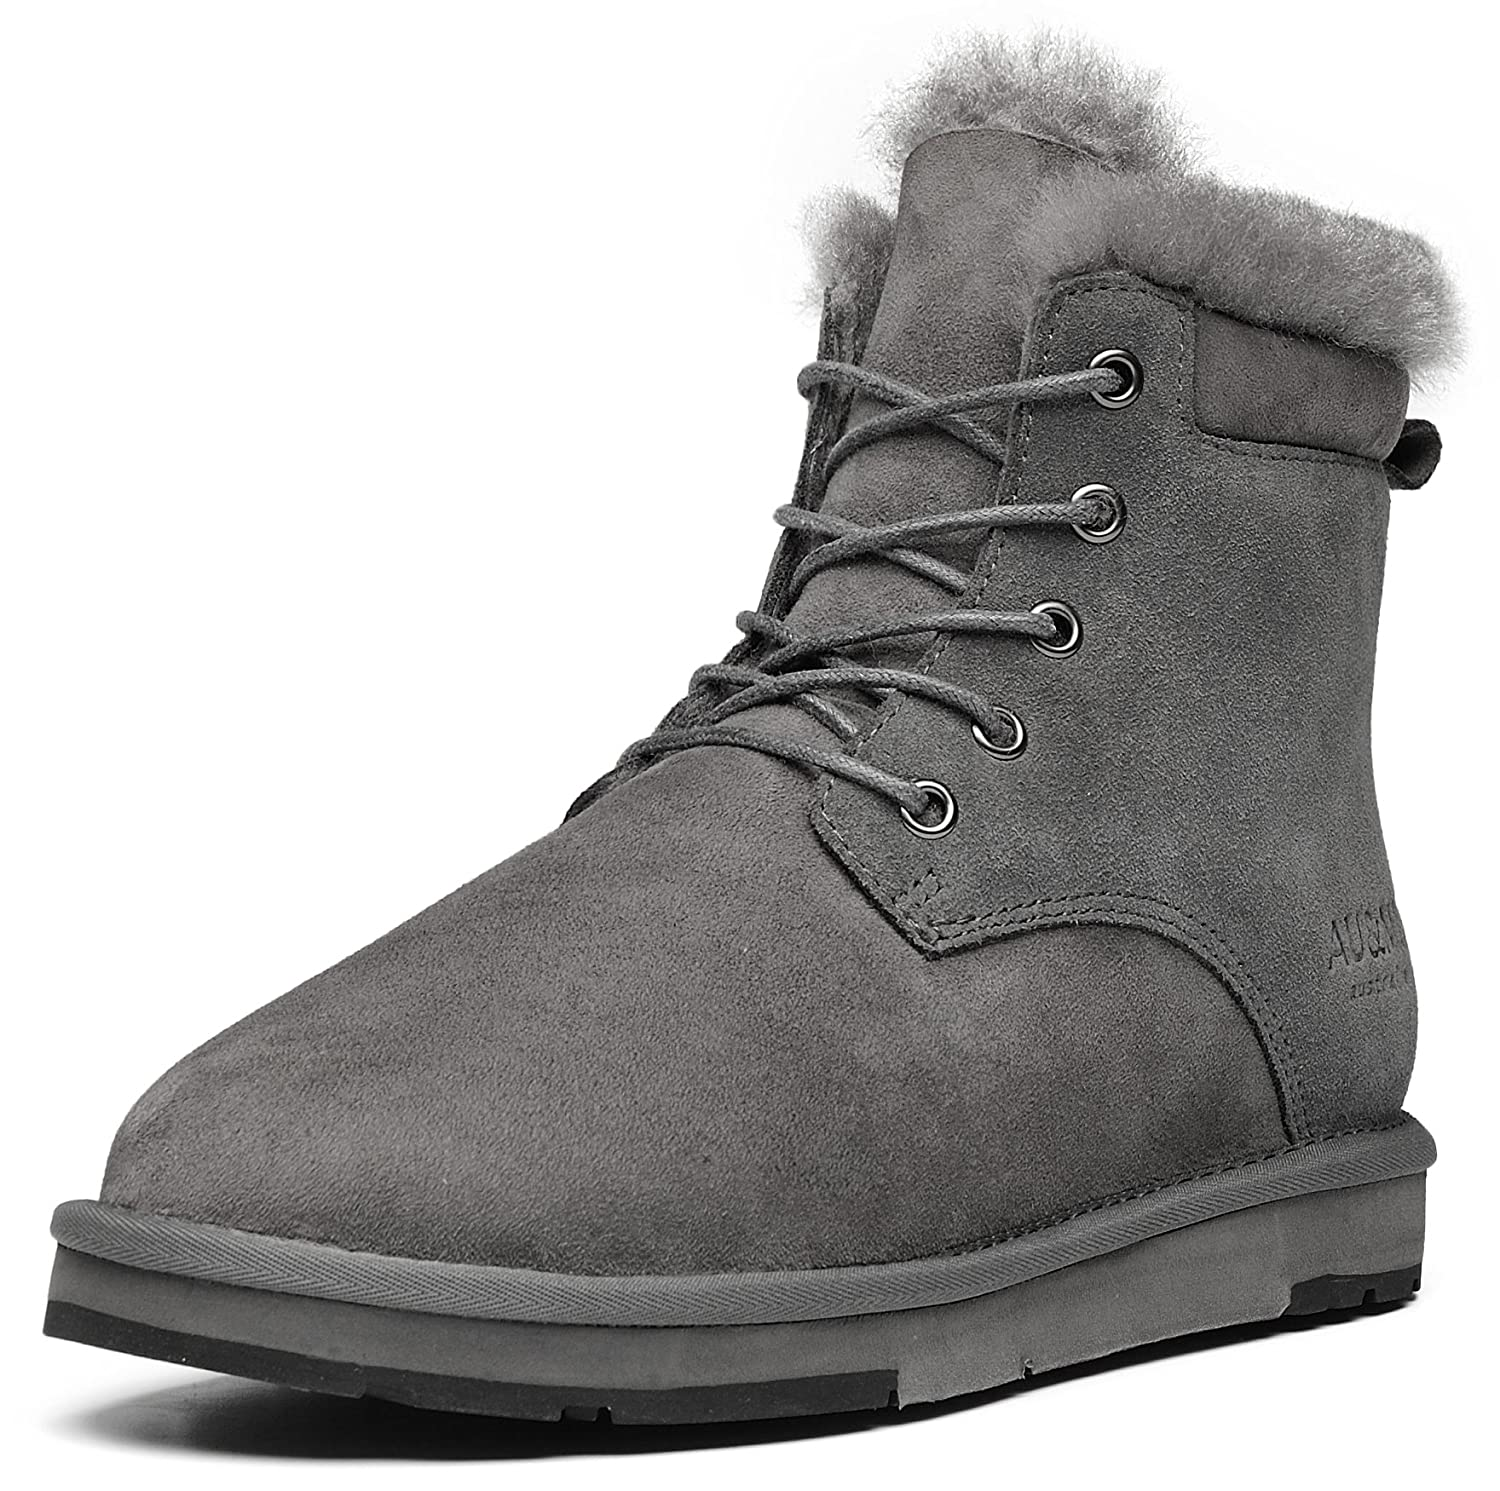 AU&MU Women's Full Fur Sheepskin Suede Winter Snow Boots B073F4TV1Q WOMEN 11 B(M)US/MEN 10 D(M)US|Grey